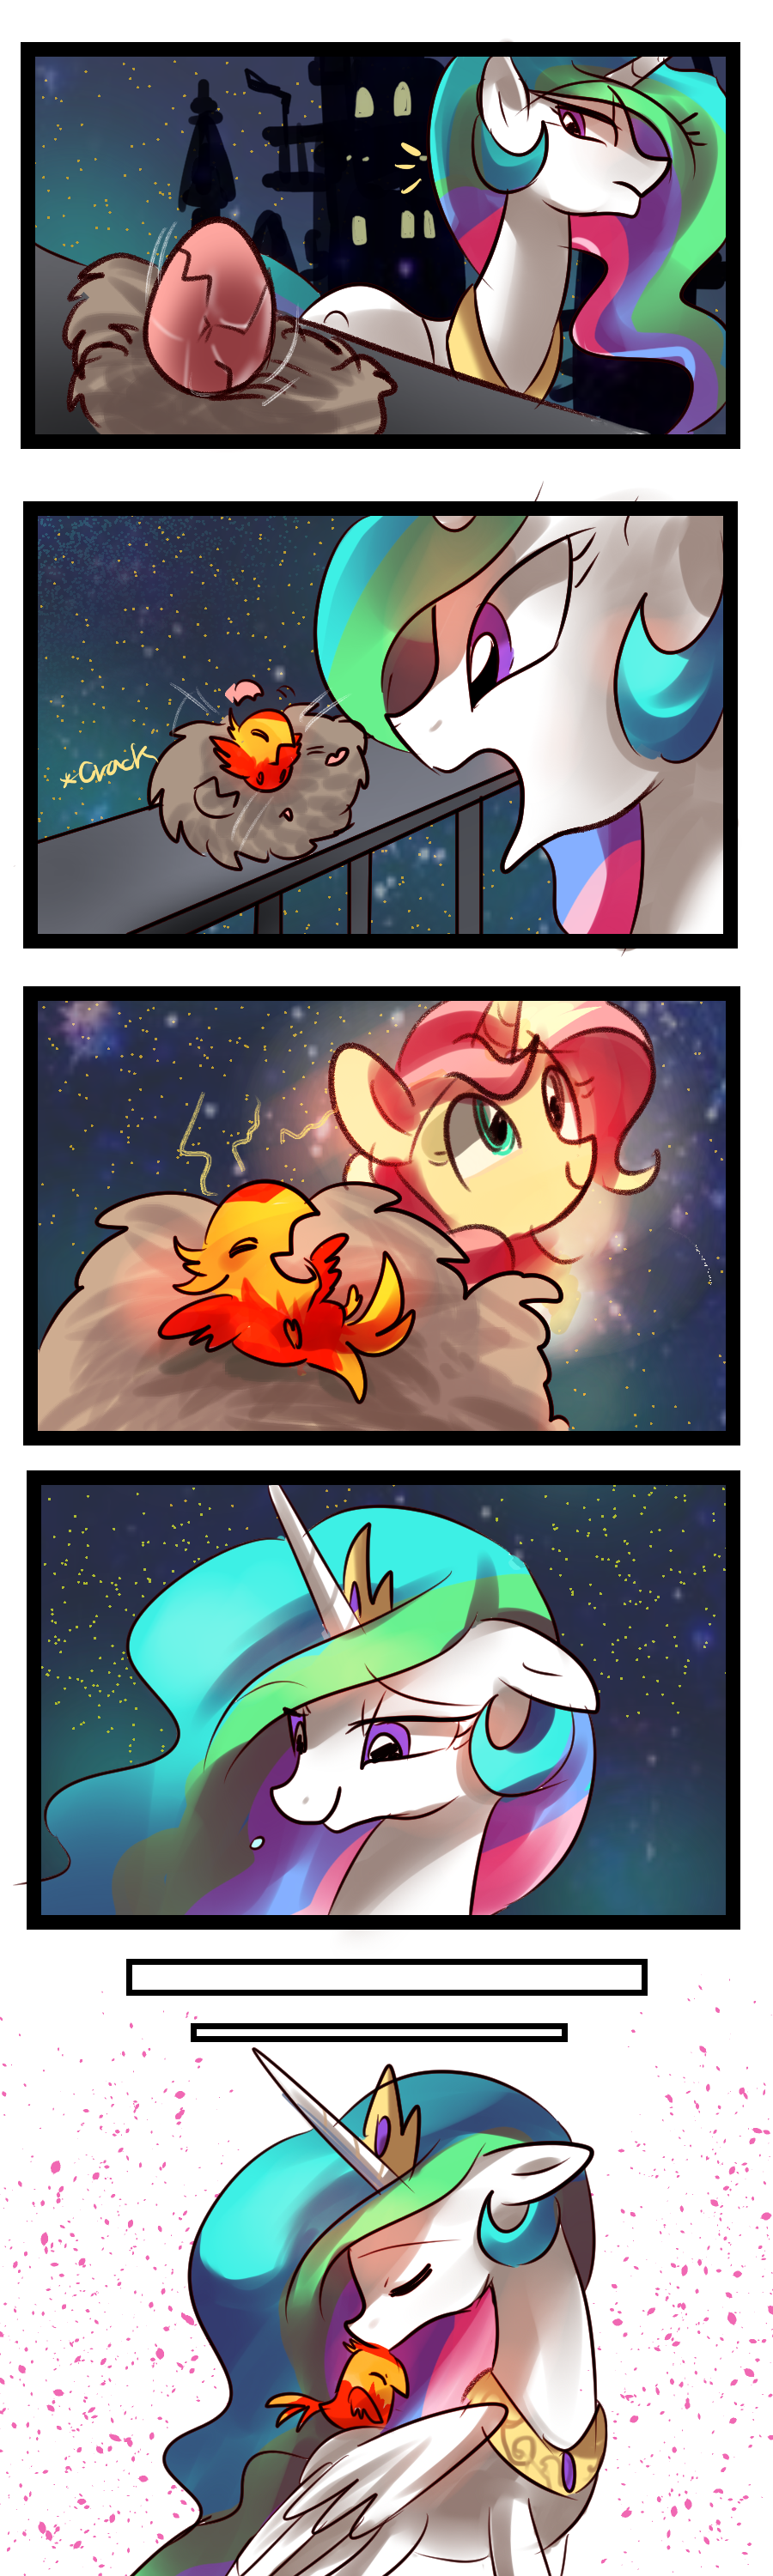 i_miss_you_by_sion_ara-d9qz735.png